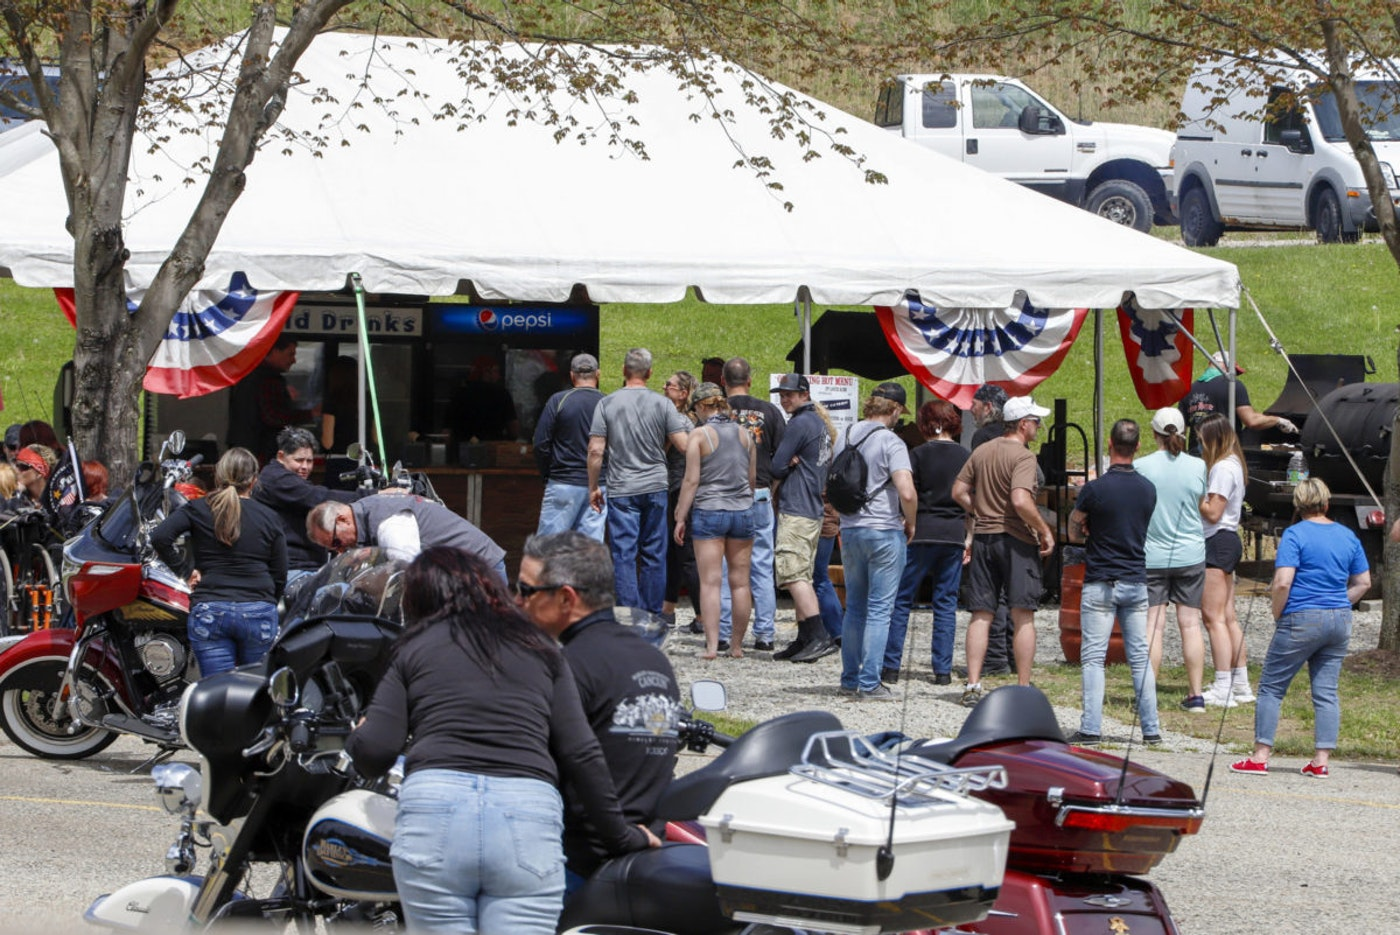 A crowd waits for barbecue in the parking lot of the historic Stonehouse Inn during the coronavirus pandemic in Farmington, Pa., Saturday, May 16, 2020. (AP Photo/Gene J. Puskar)